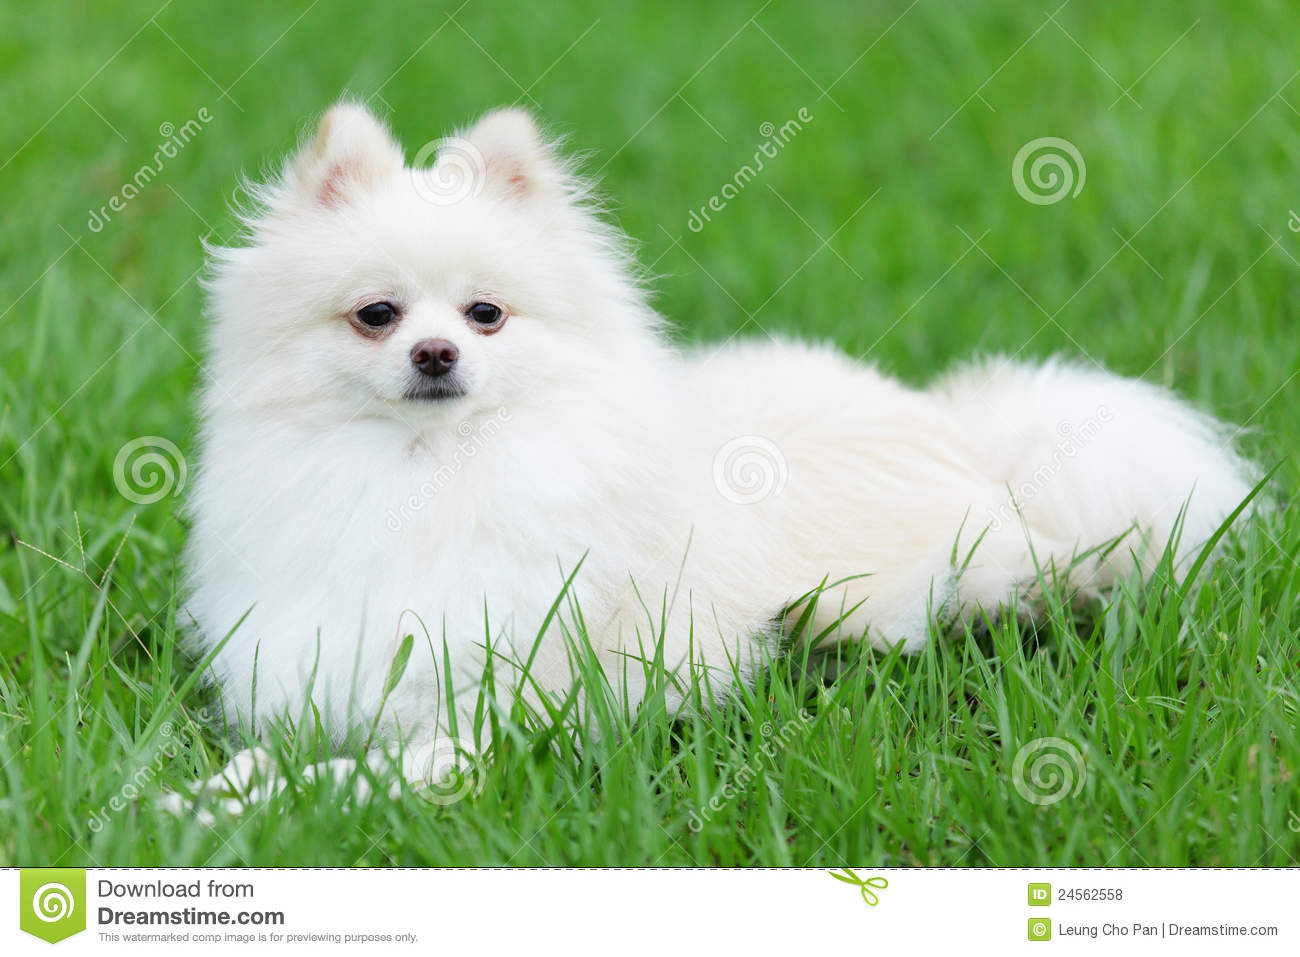 Cute pet in house pomeranian dog sleeping on the bed stock photo white pomeranian dog royalty free stock photos altavistaventures Images